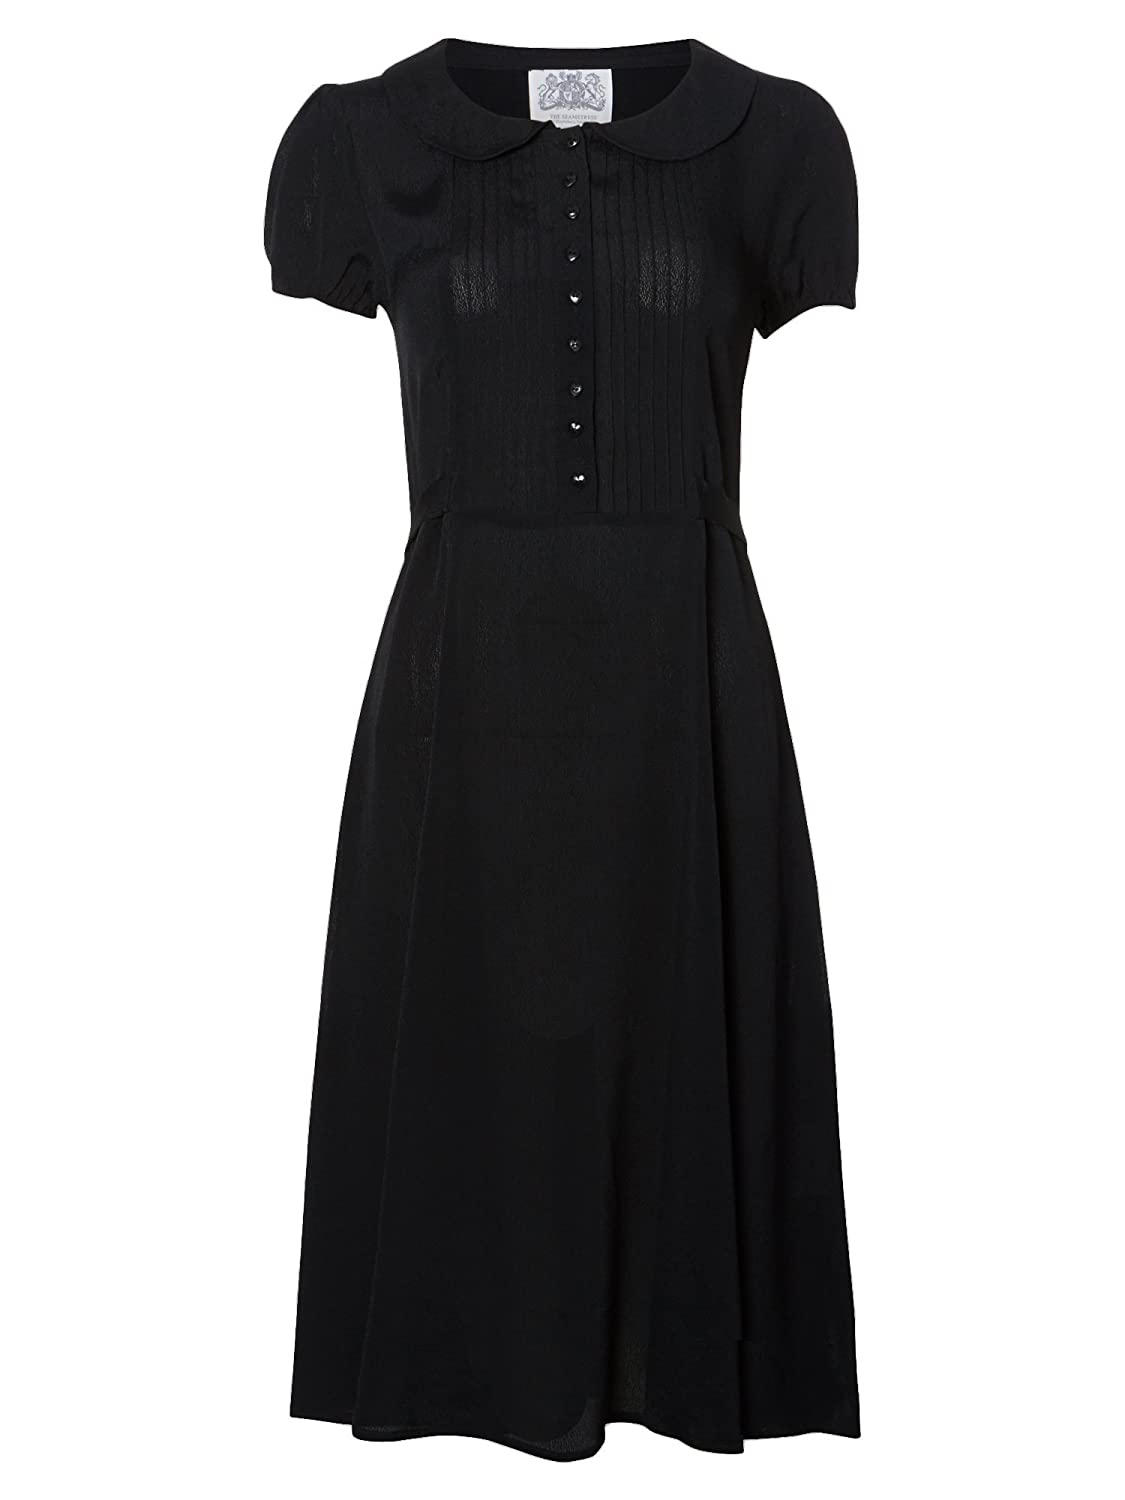 1940s Tea Dresses, Mature, Mrs. Long Sleeve Dresses 1940s Authentic Vintage Inspired Dorothy Dress in Black �79.00 AT vintagedancer.com